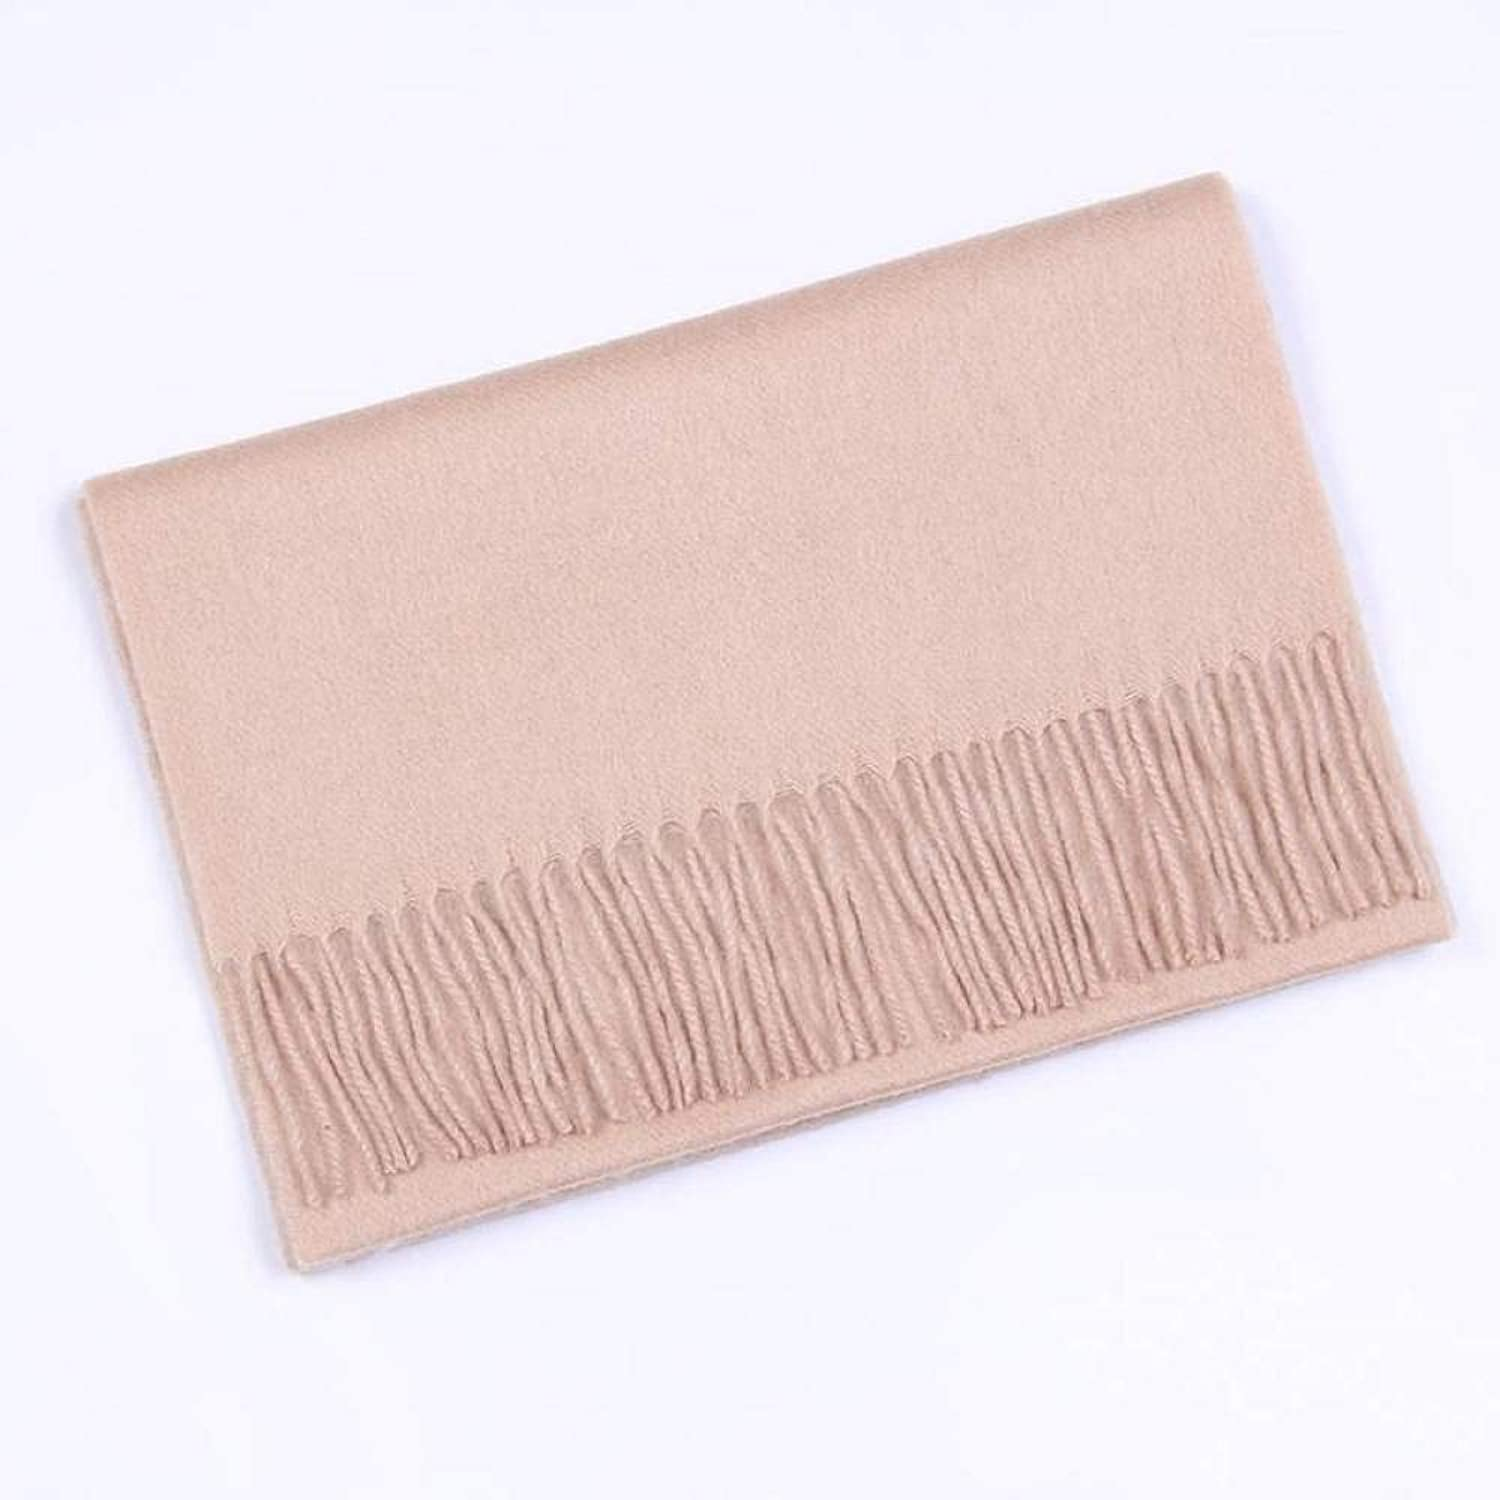 Cashmere Autumn and Winter Women Scarf Lightweight Warm Pure color Thickened Shawl Hqysjin